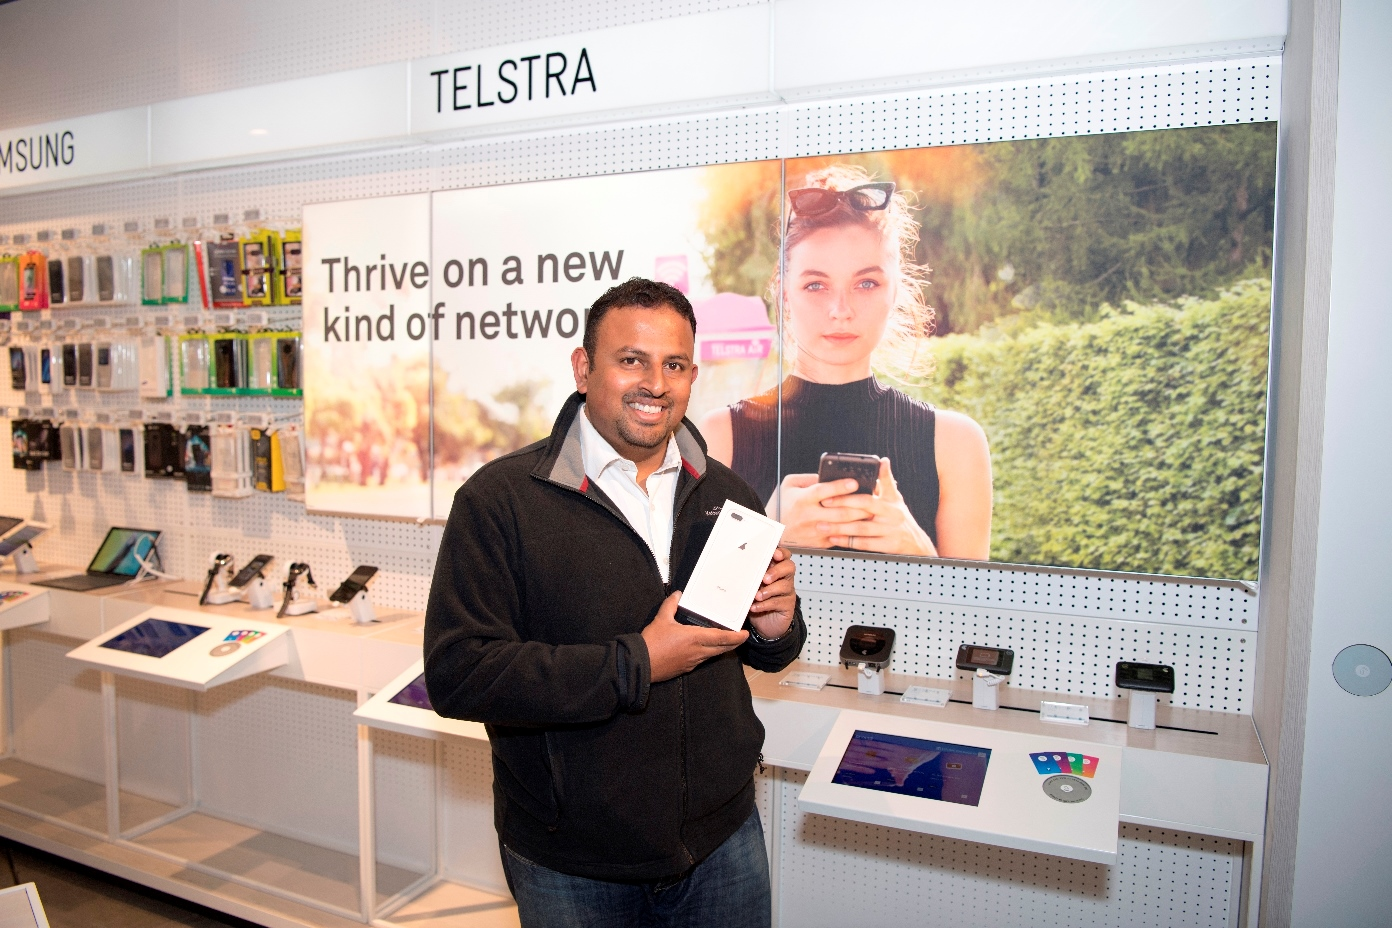 Telstra Launches Iphone 8 And Iphone 8 Plus With Most Generous Data And International Calling